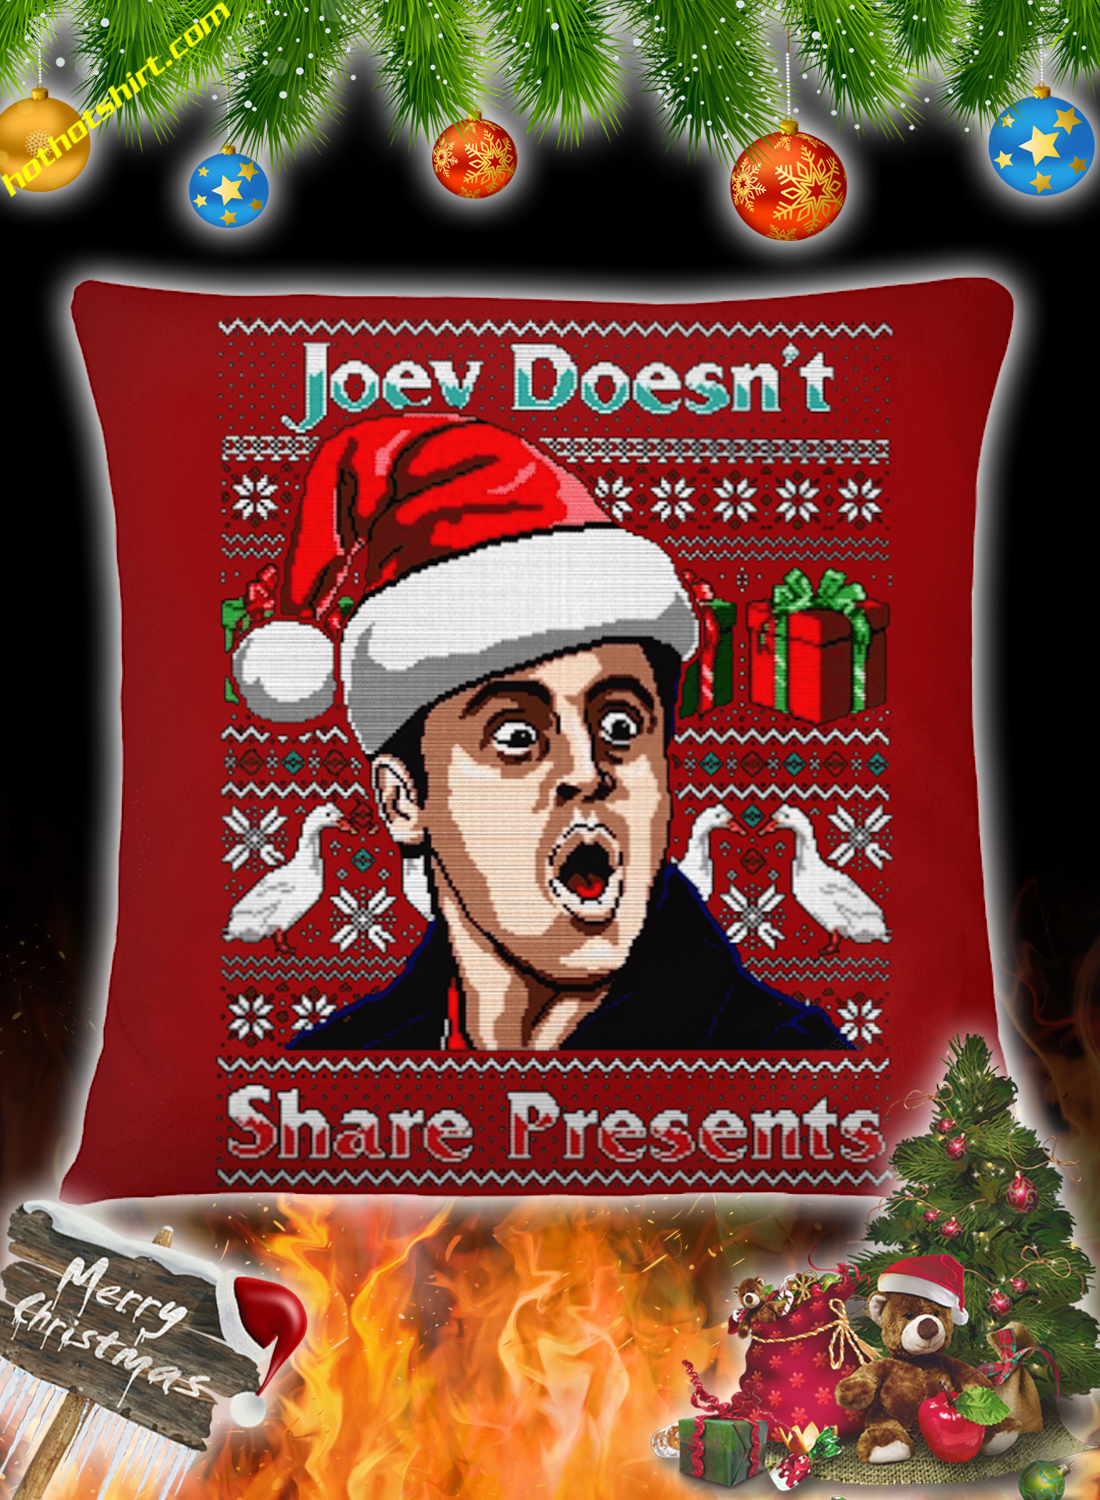 Joey doesn't share presents christmas jumper and sweatshirt 3